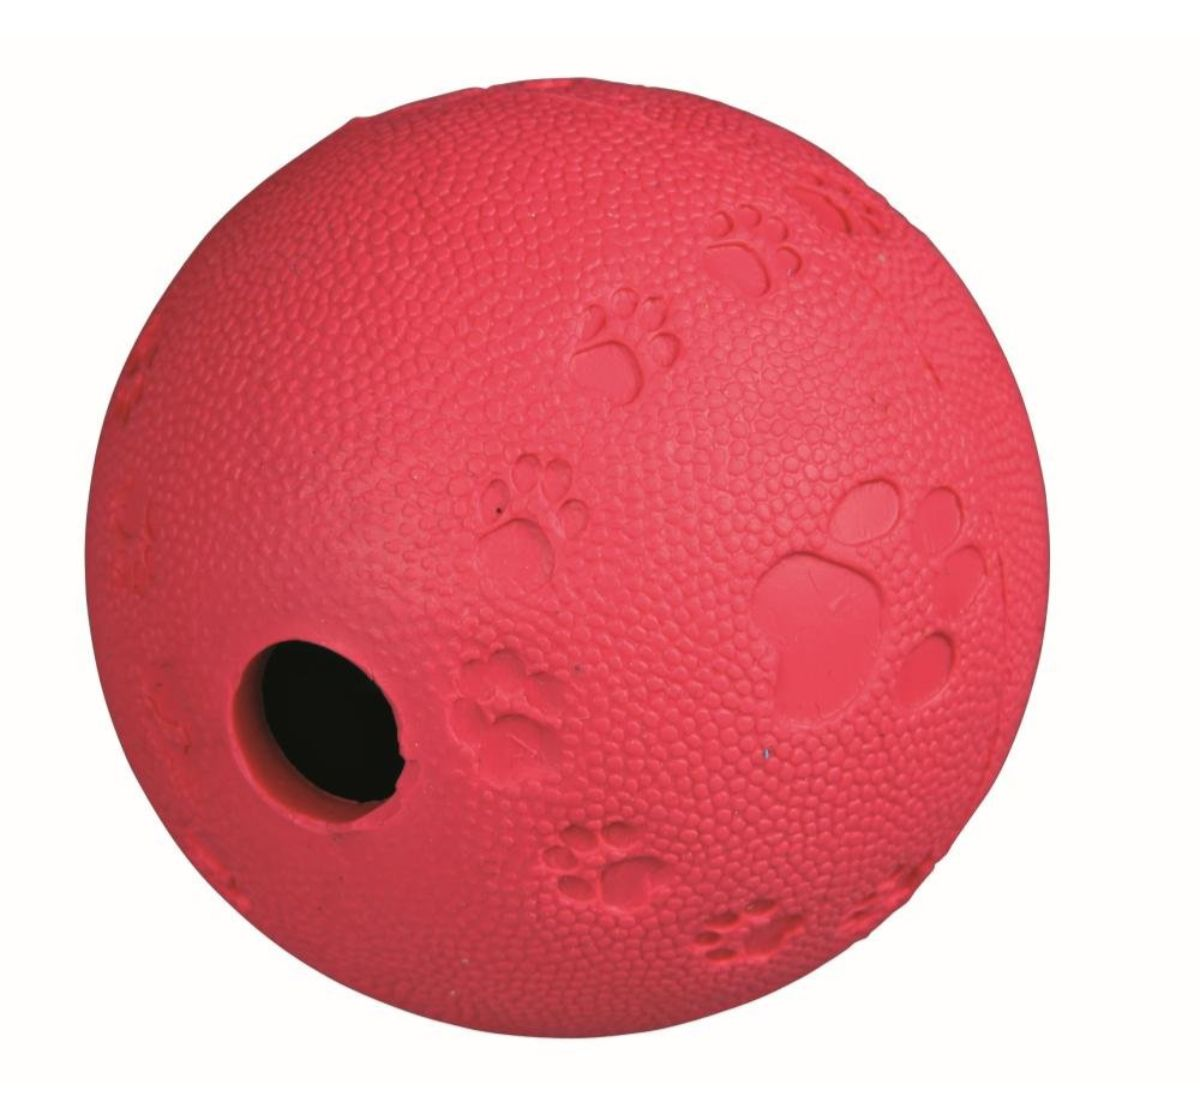 Trixie Snack Ball Interactive Cat Toy - 7 CM